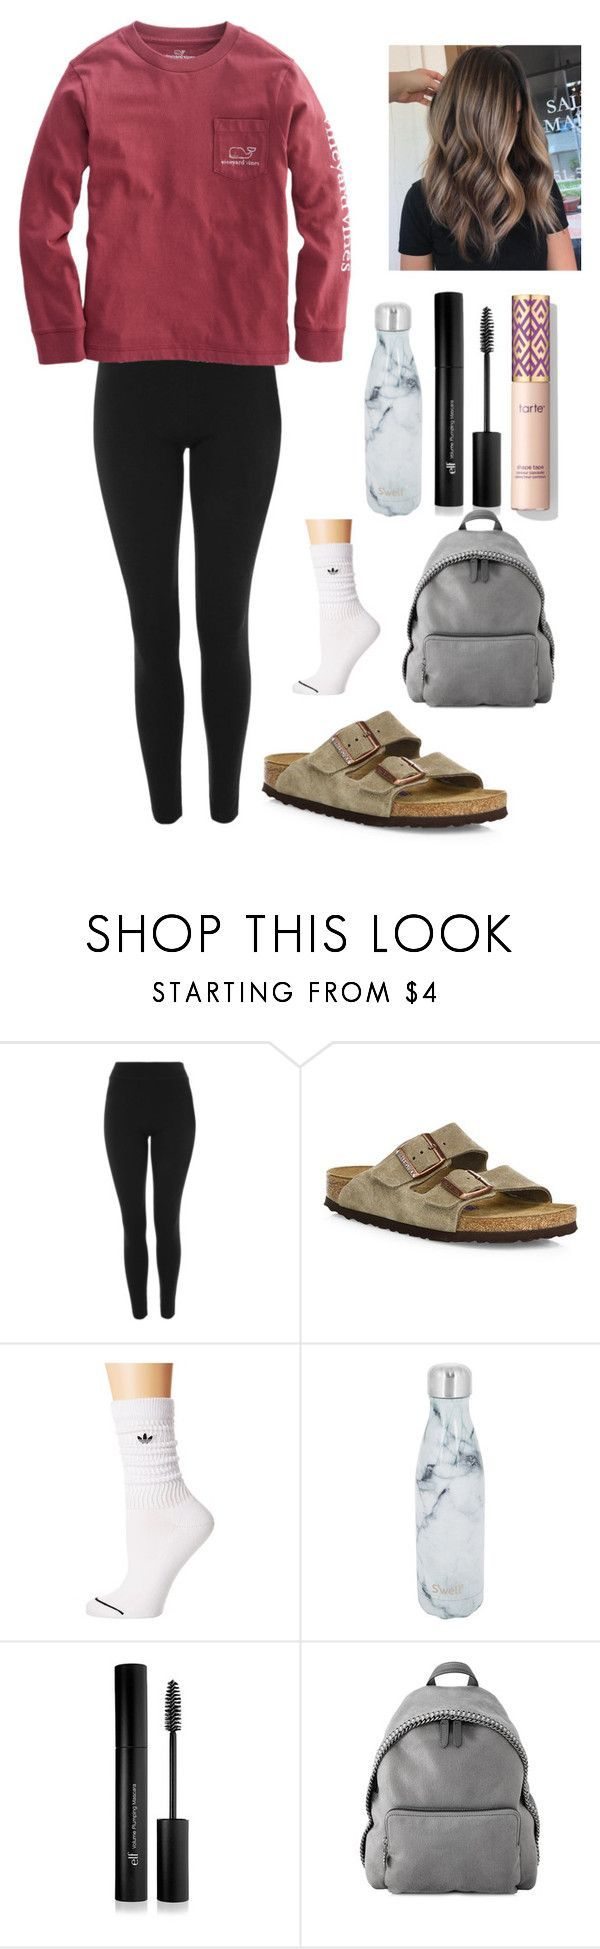 """""""Chill school outfit"""" by lagr on Polyvore featuring Topshop, Birkenstock, adidas Originals, S'well, Forever 21 and STELLA McCARTNEY"""